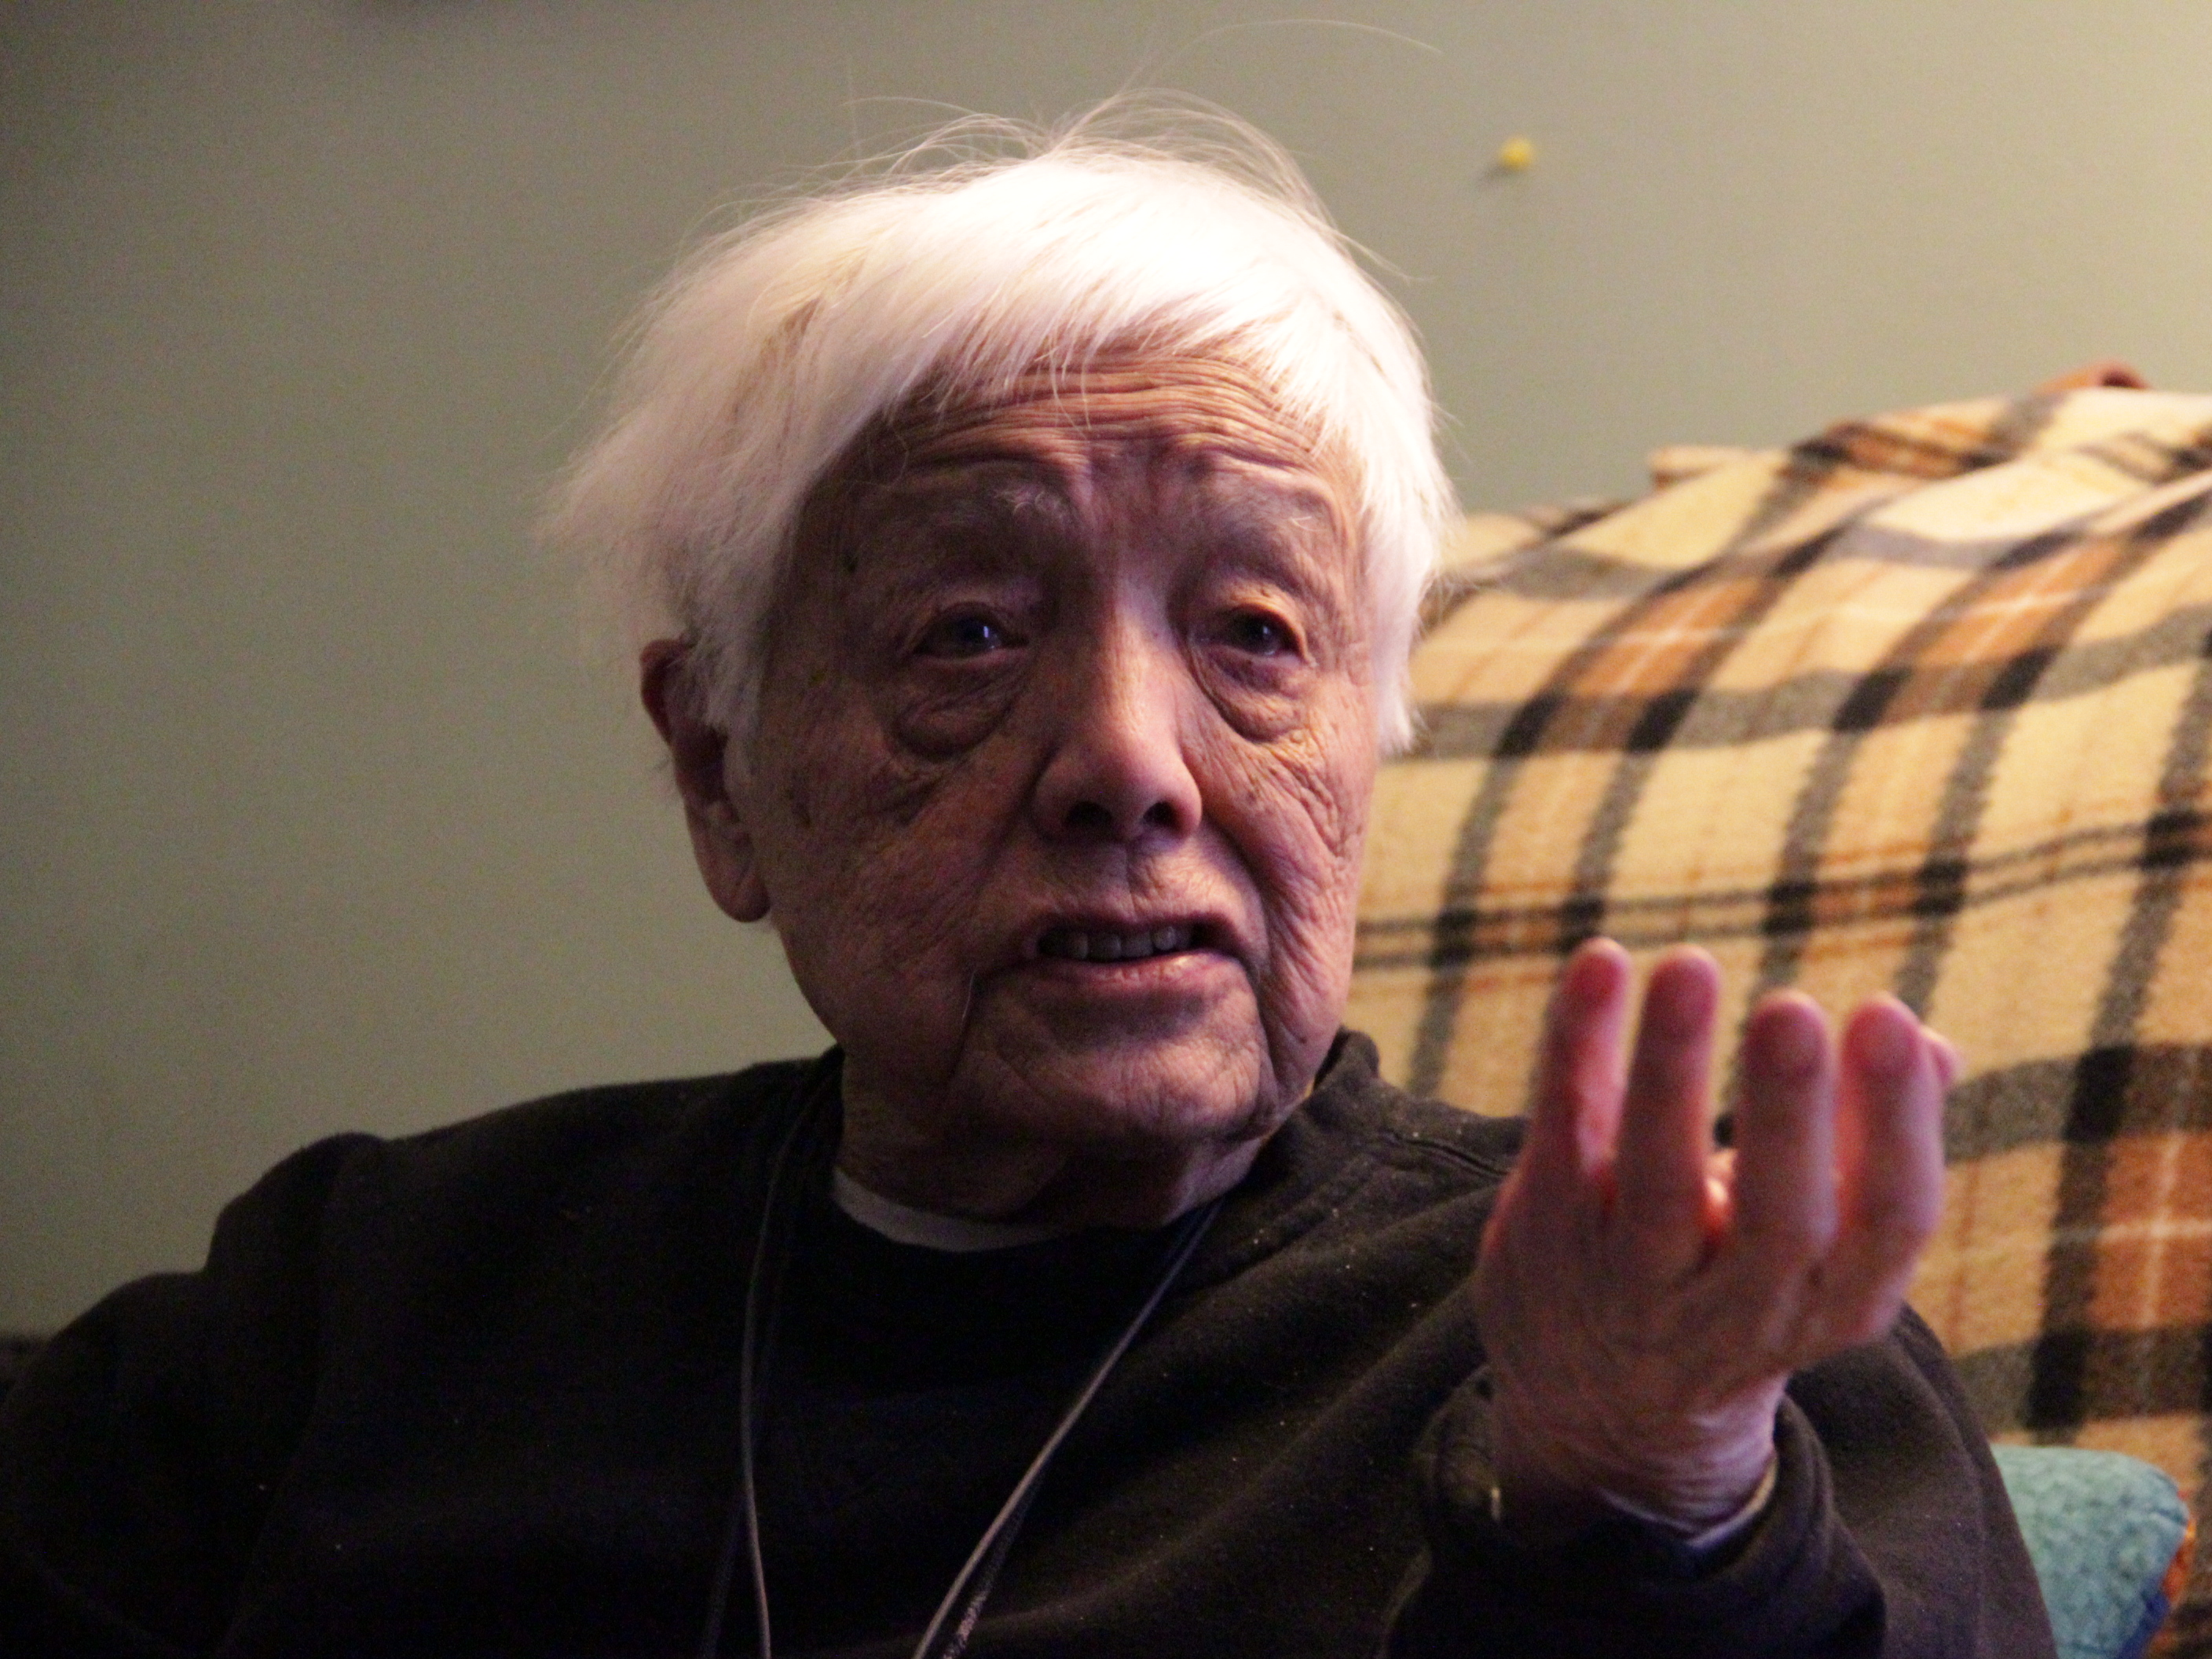 Grace Lee Boggs at her home inDetroiton February 21, 2012.